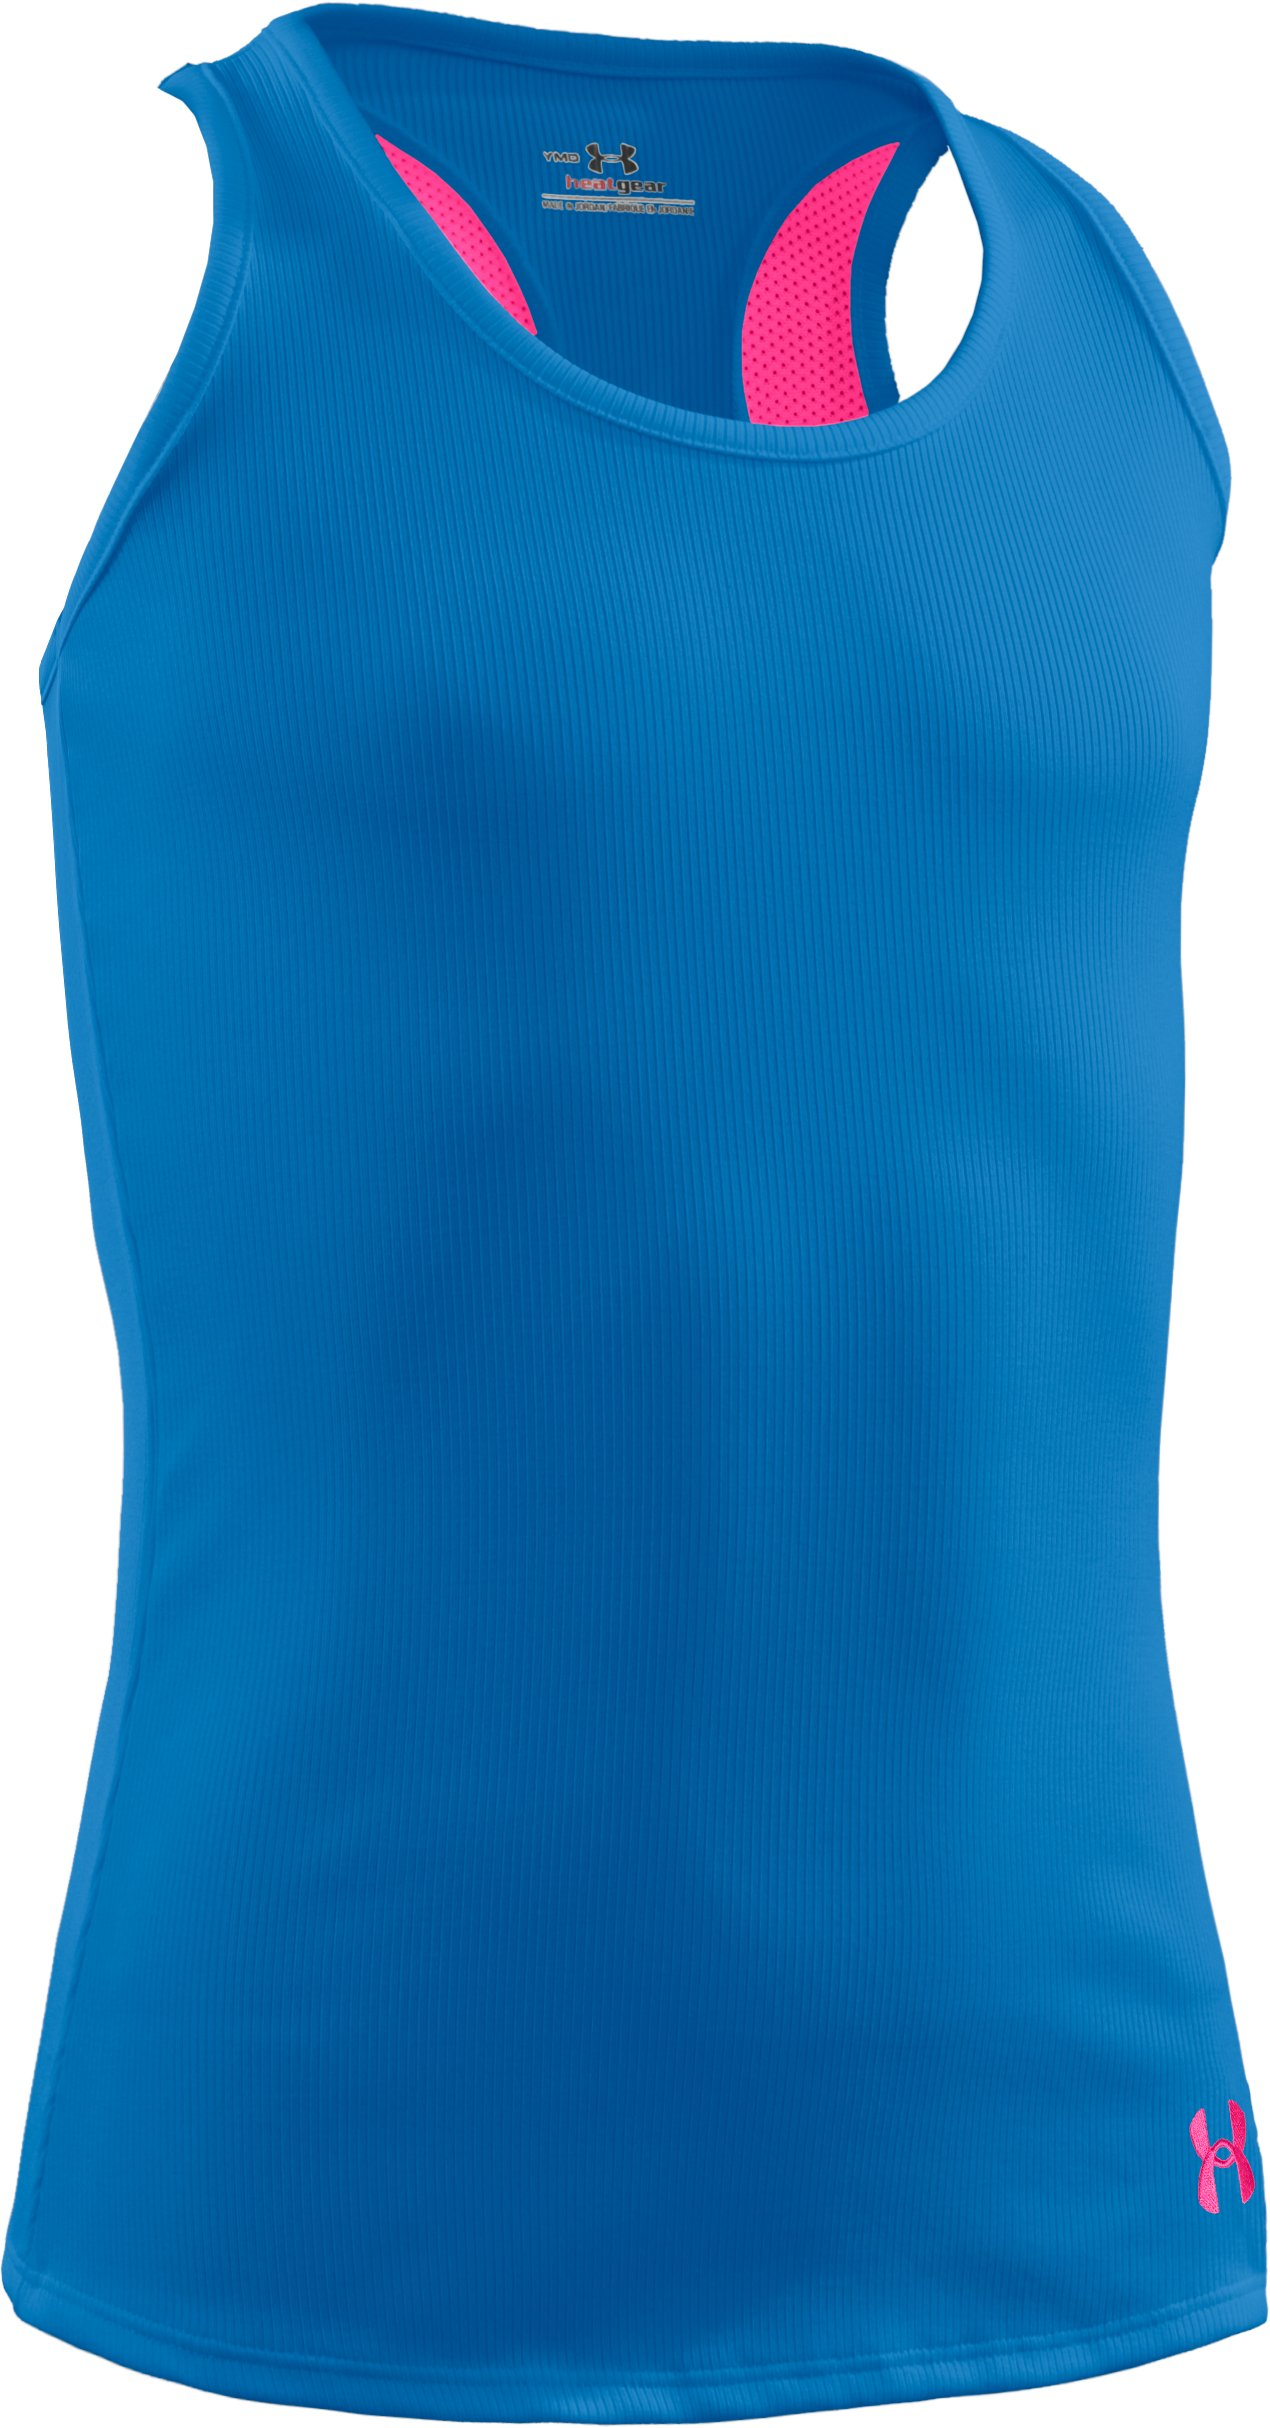 Girls' Victory Tank Top, Pool